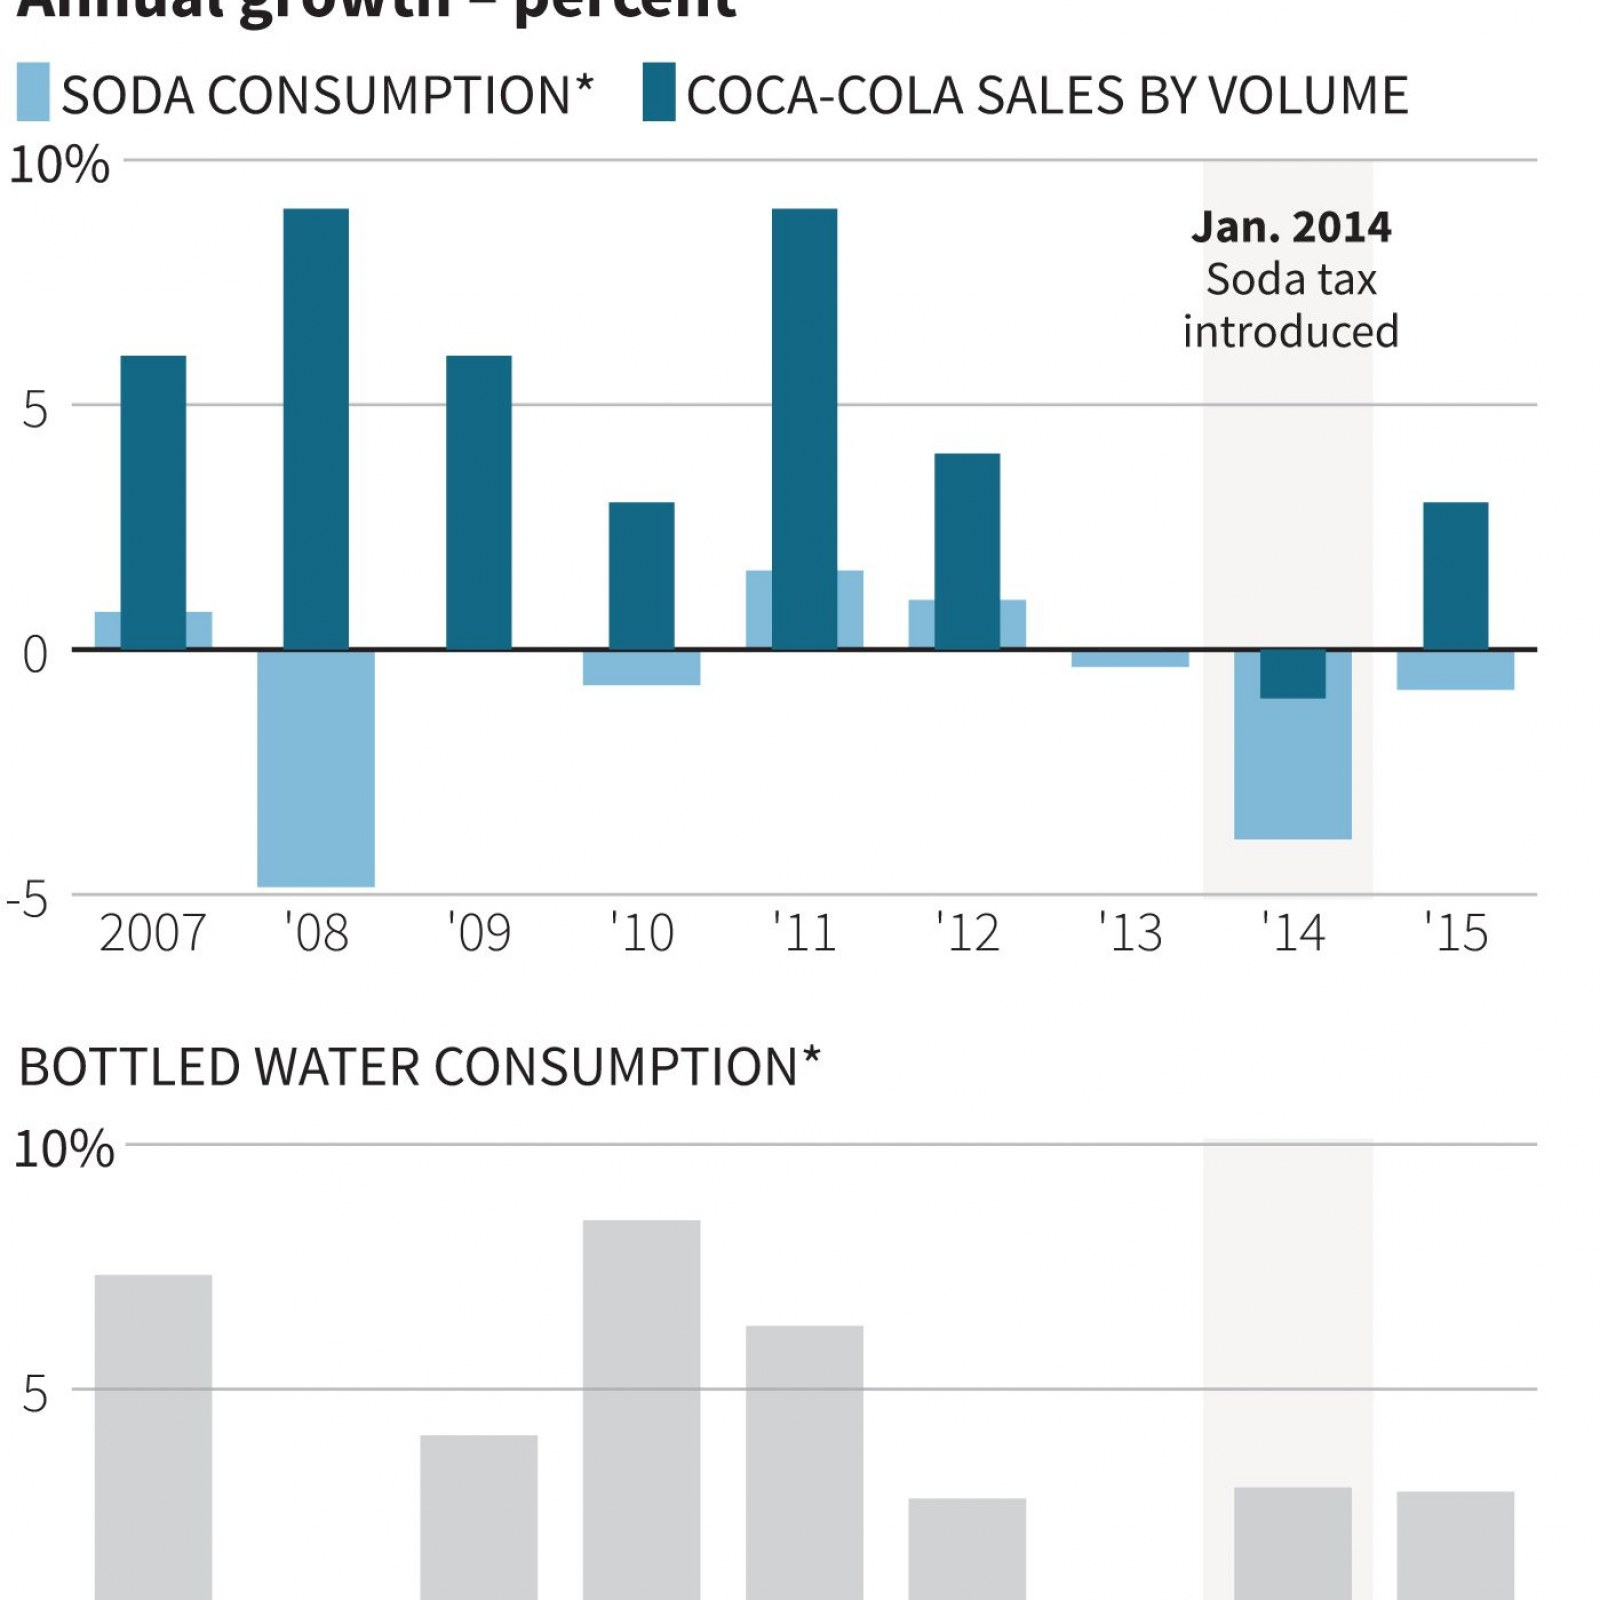 Sugar-Sweetened Beverages are Now Cheaper than Bottled Water